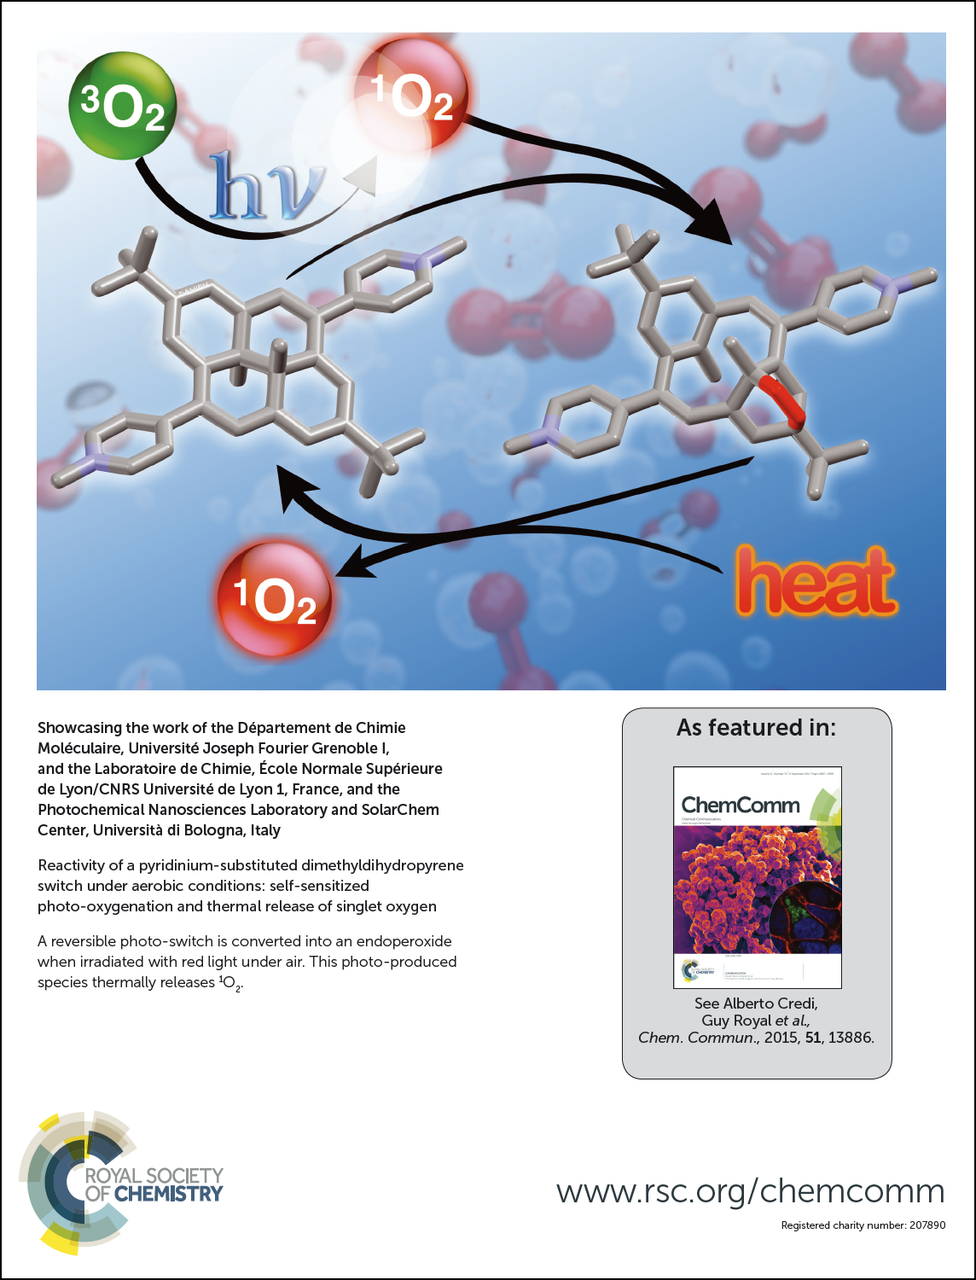 Self-sensitized photo-oxygenation and thermal release of singlet oxygen by a DHP switch